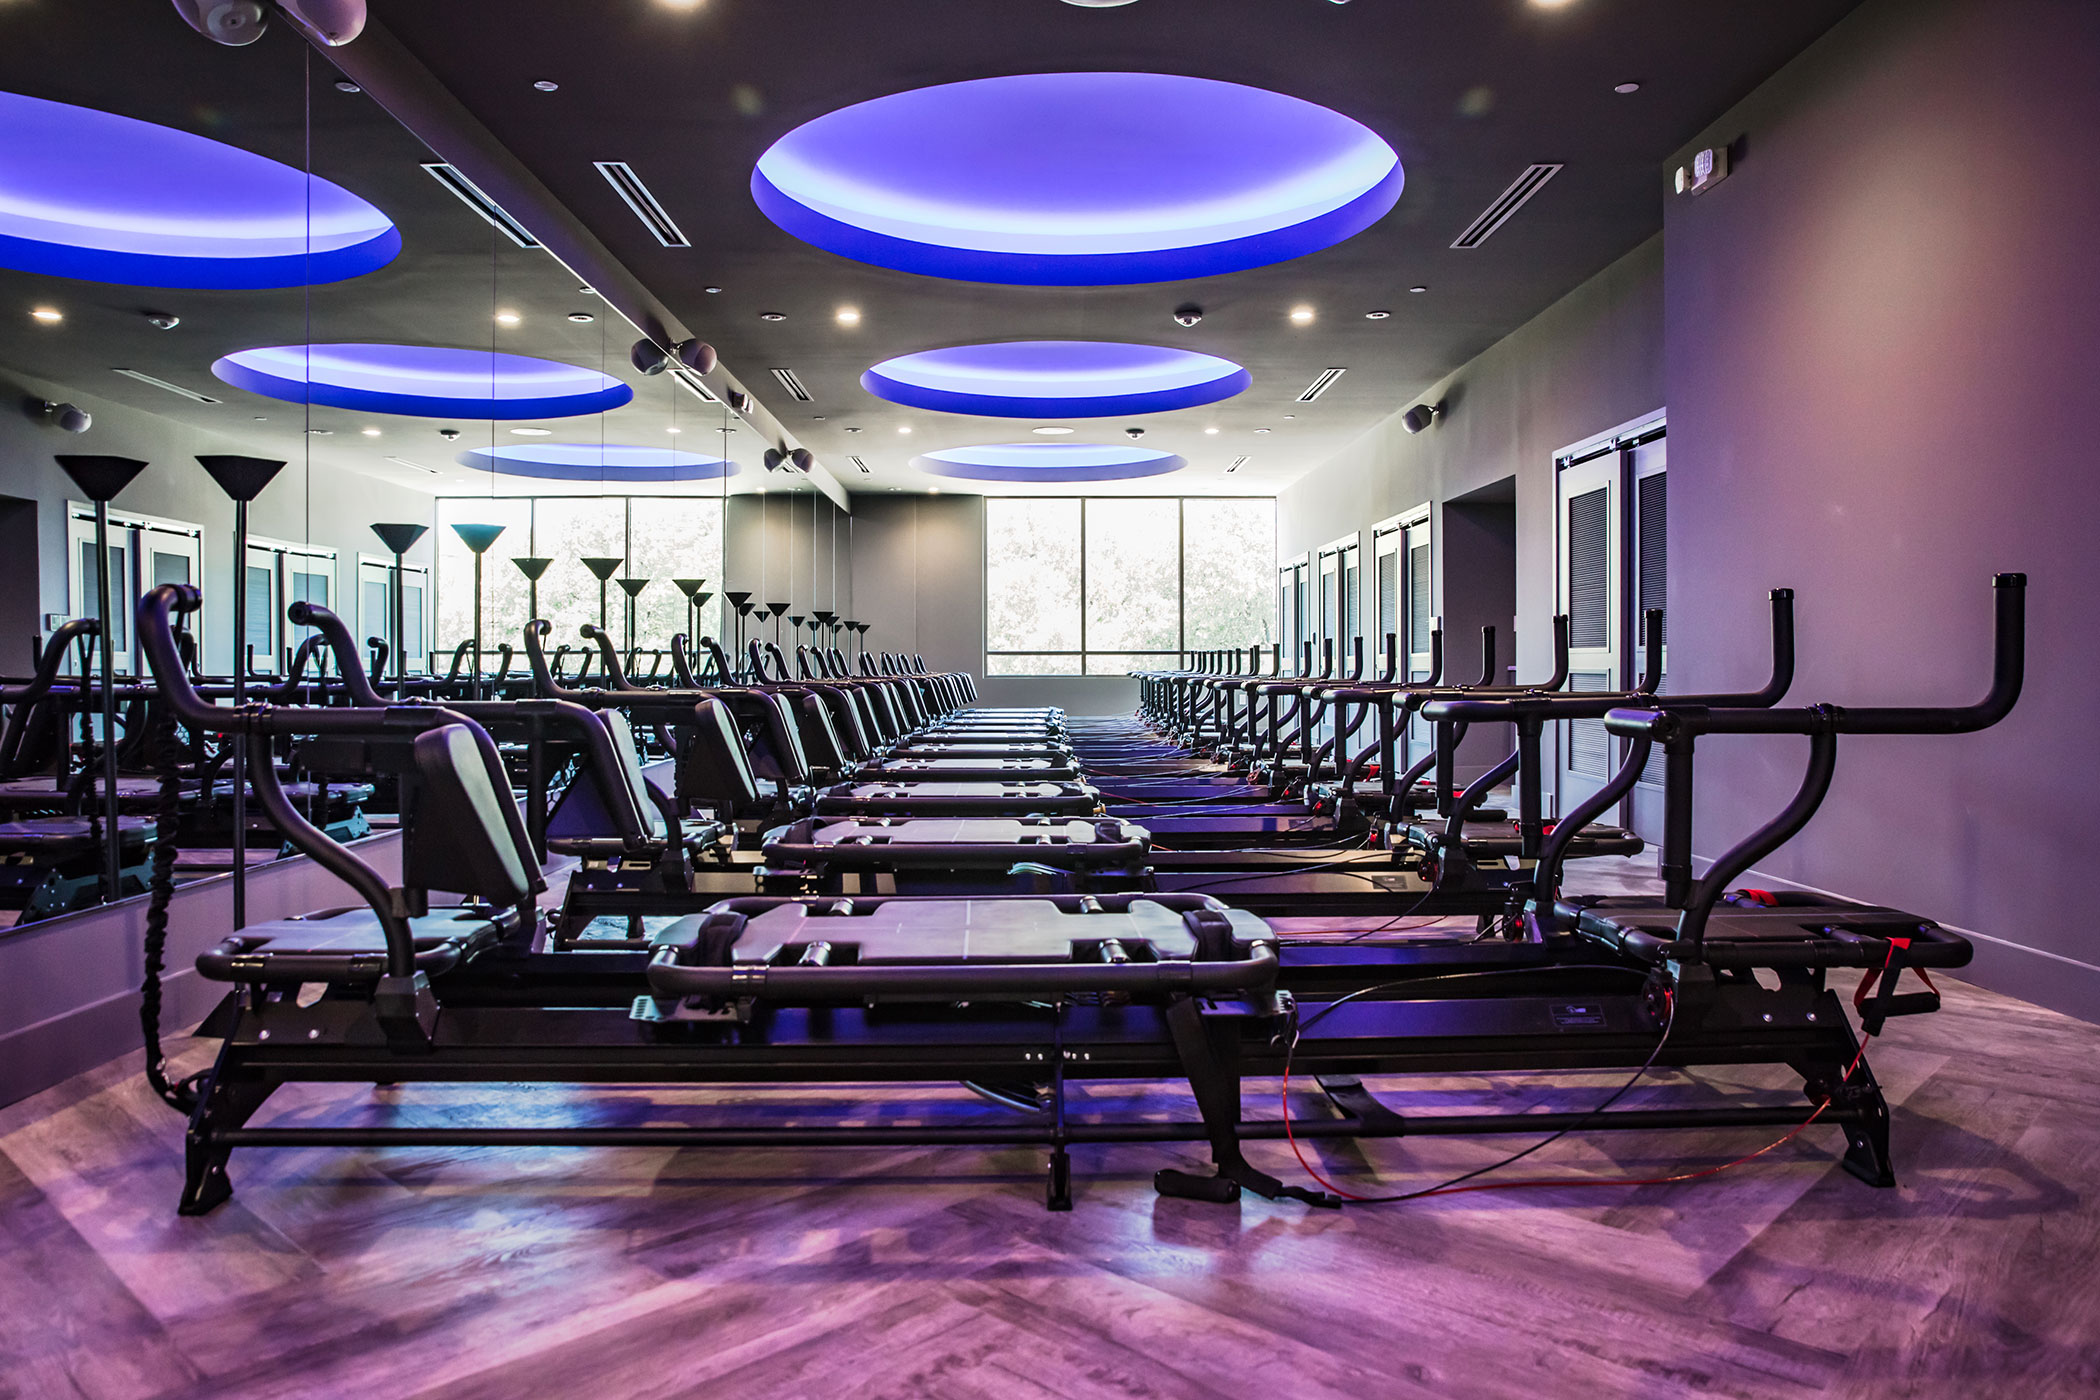 Class Review: Tight Lagree Fitness - D Magazine